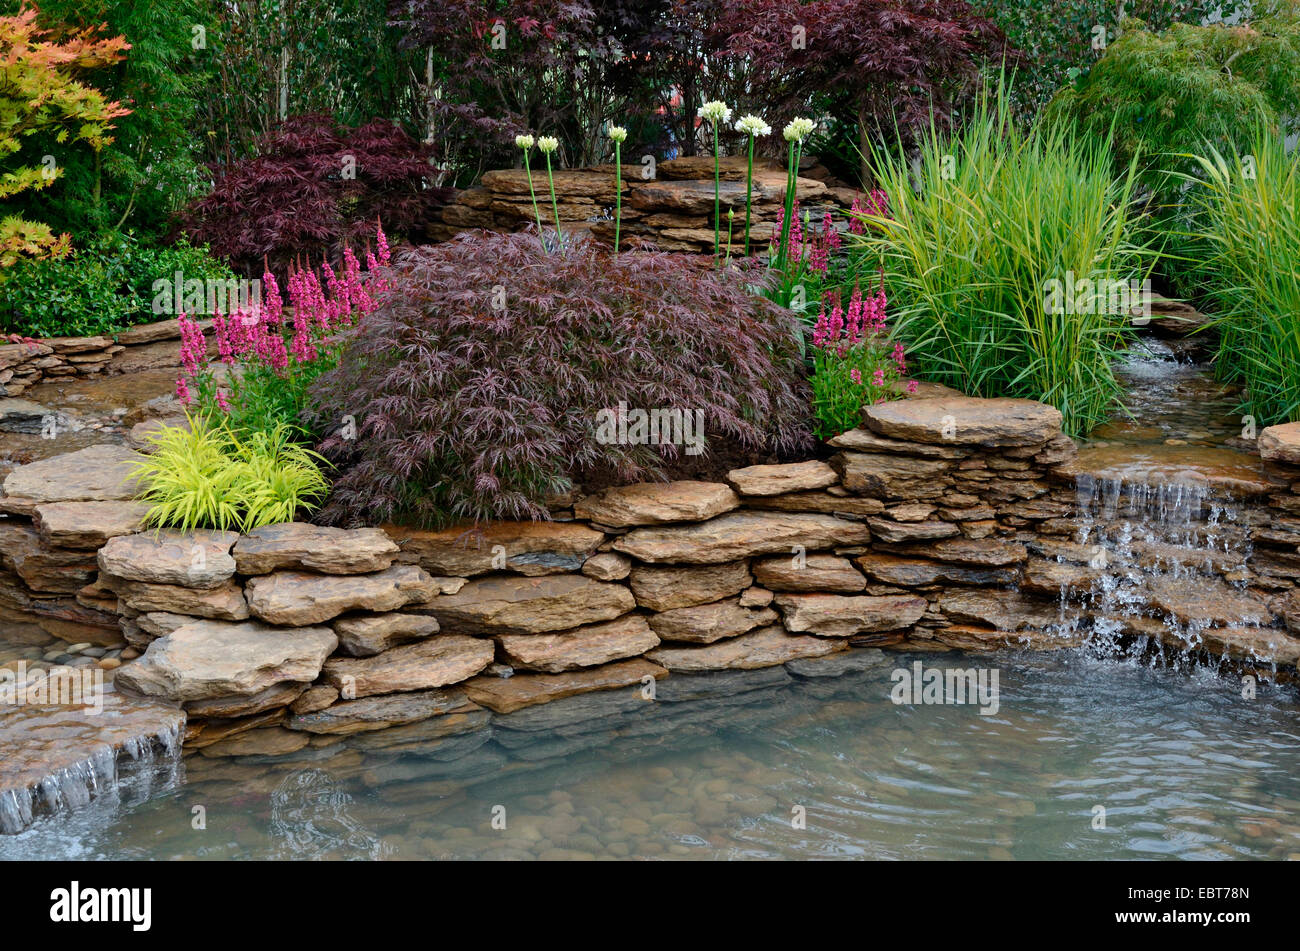 The pond area in a reflective aquatic garden with planted rockery ...